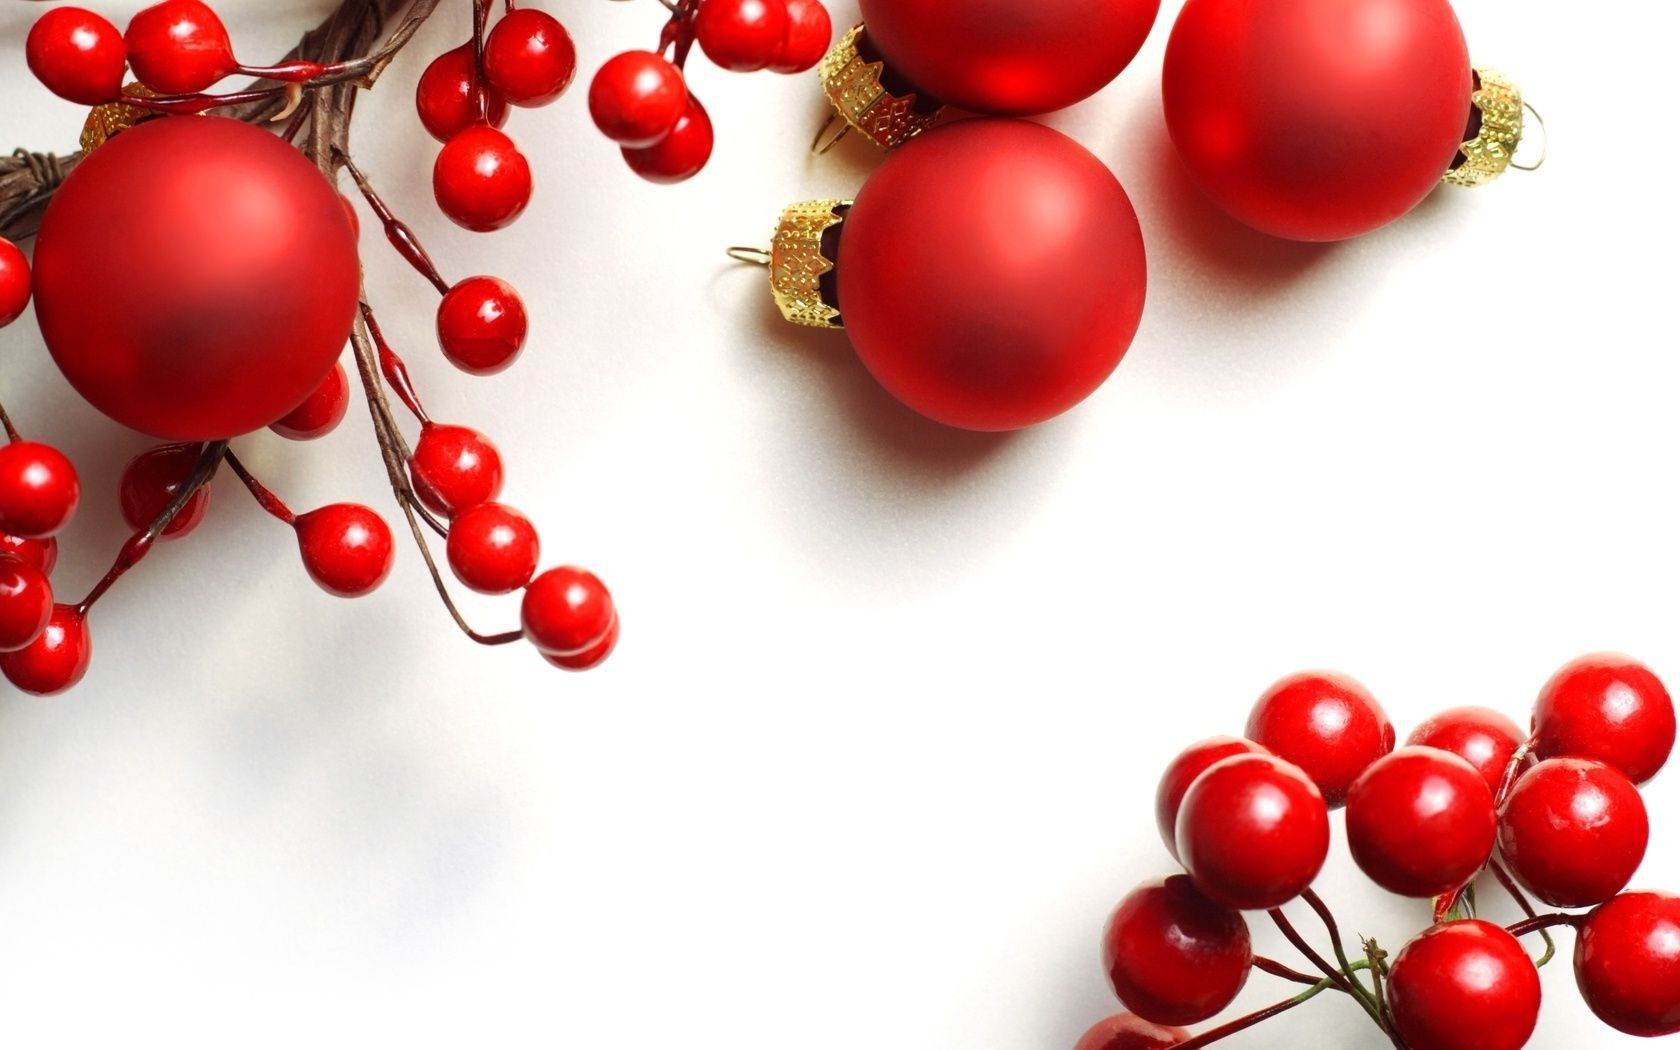 new year shining christmas winter round berry food cherry juicy decoration ball delicious fruit nutrition